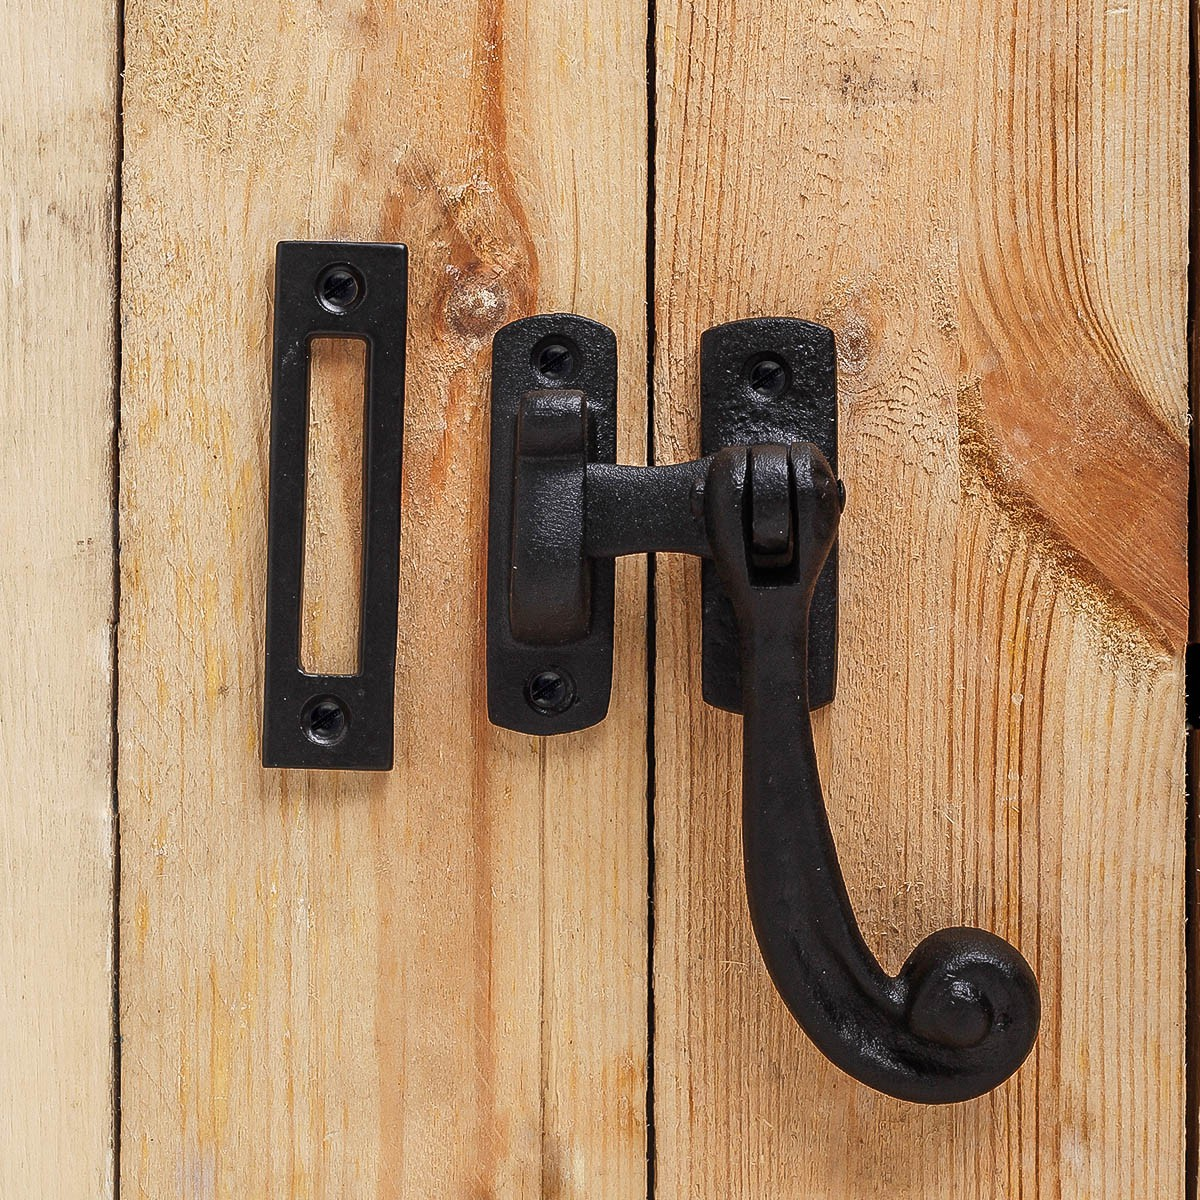 Sash Window Door Lock Black Wrought Iron 4 12 Wrought Iron Sash Lock Lift Antique Shpards Hurs Black Holder